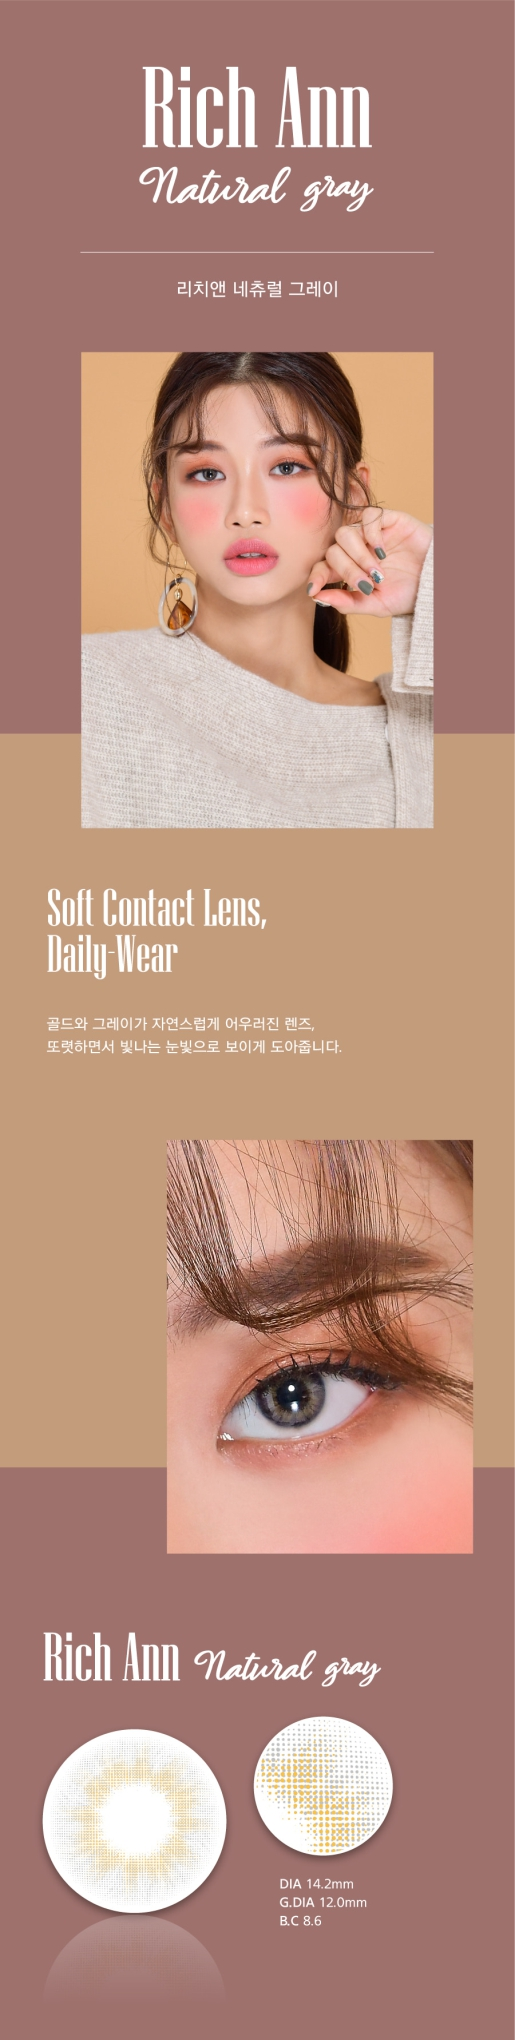 Lens 1 ngay Rich Ann Natural Gray